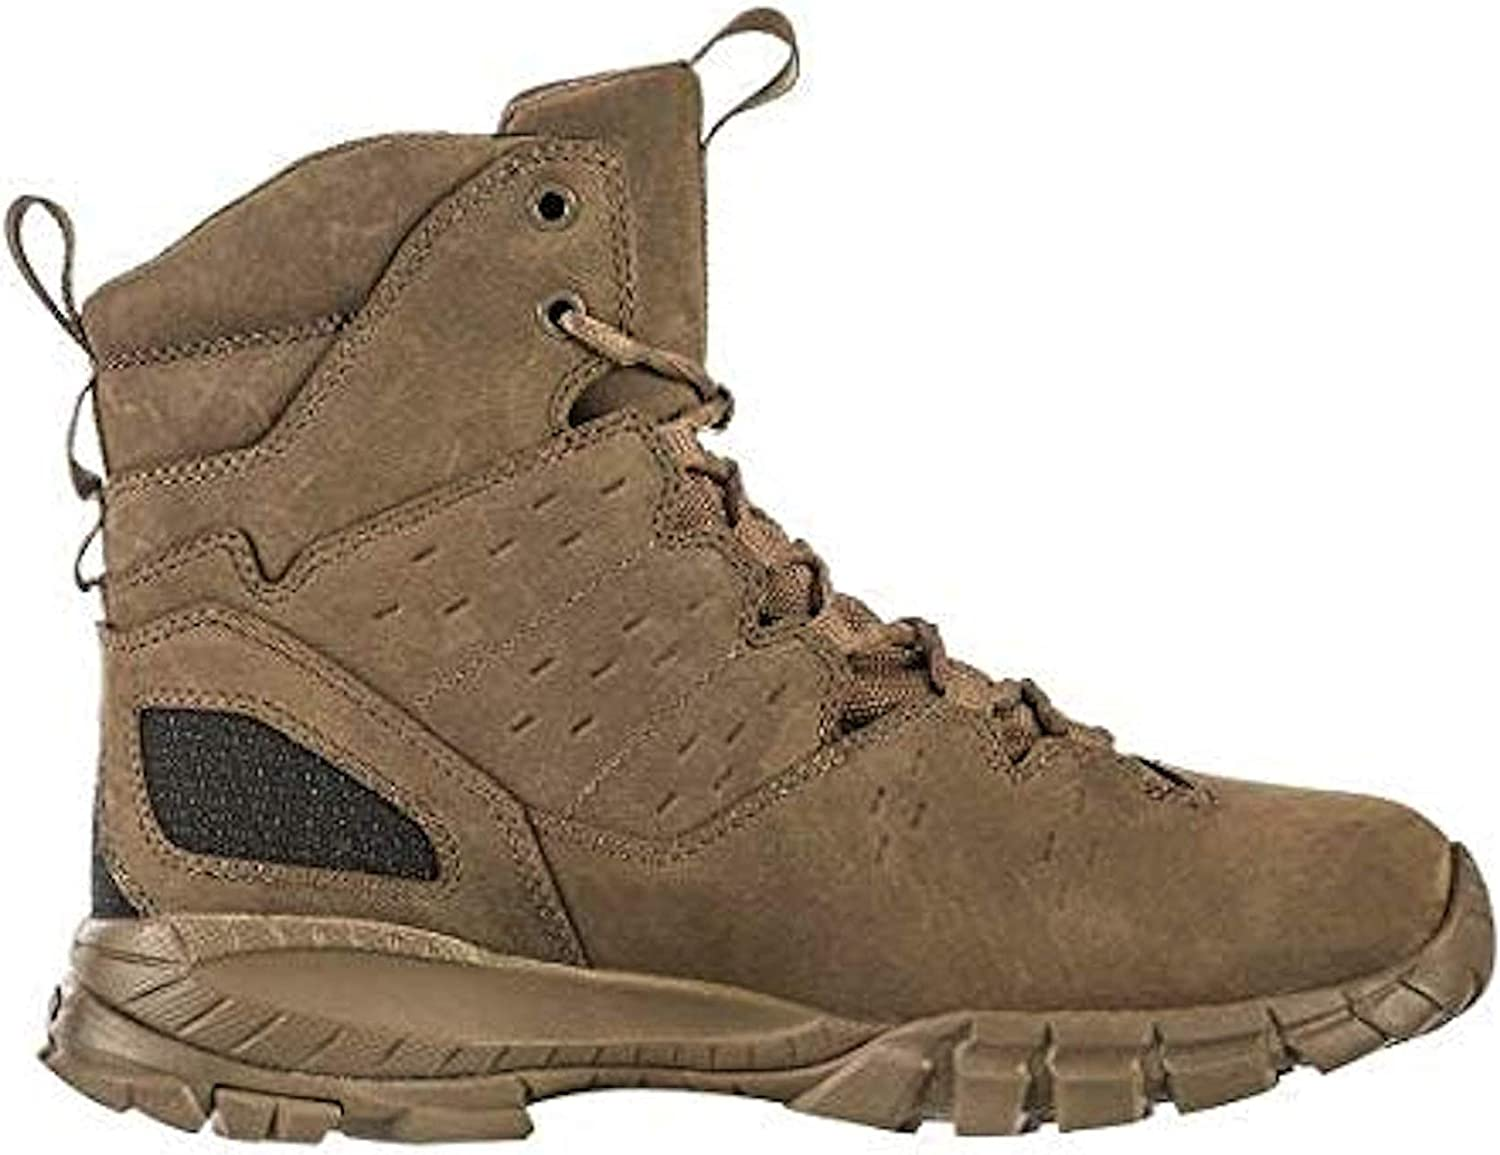 """5.11 Men's XPRT 3.0 Waterpoof 6"""" Military and Tactical Boot, Wet & Dry Gripping, Style 12373"""